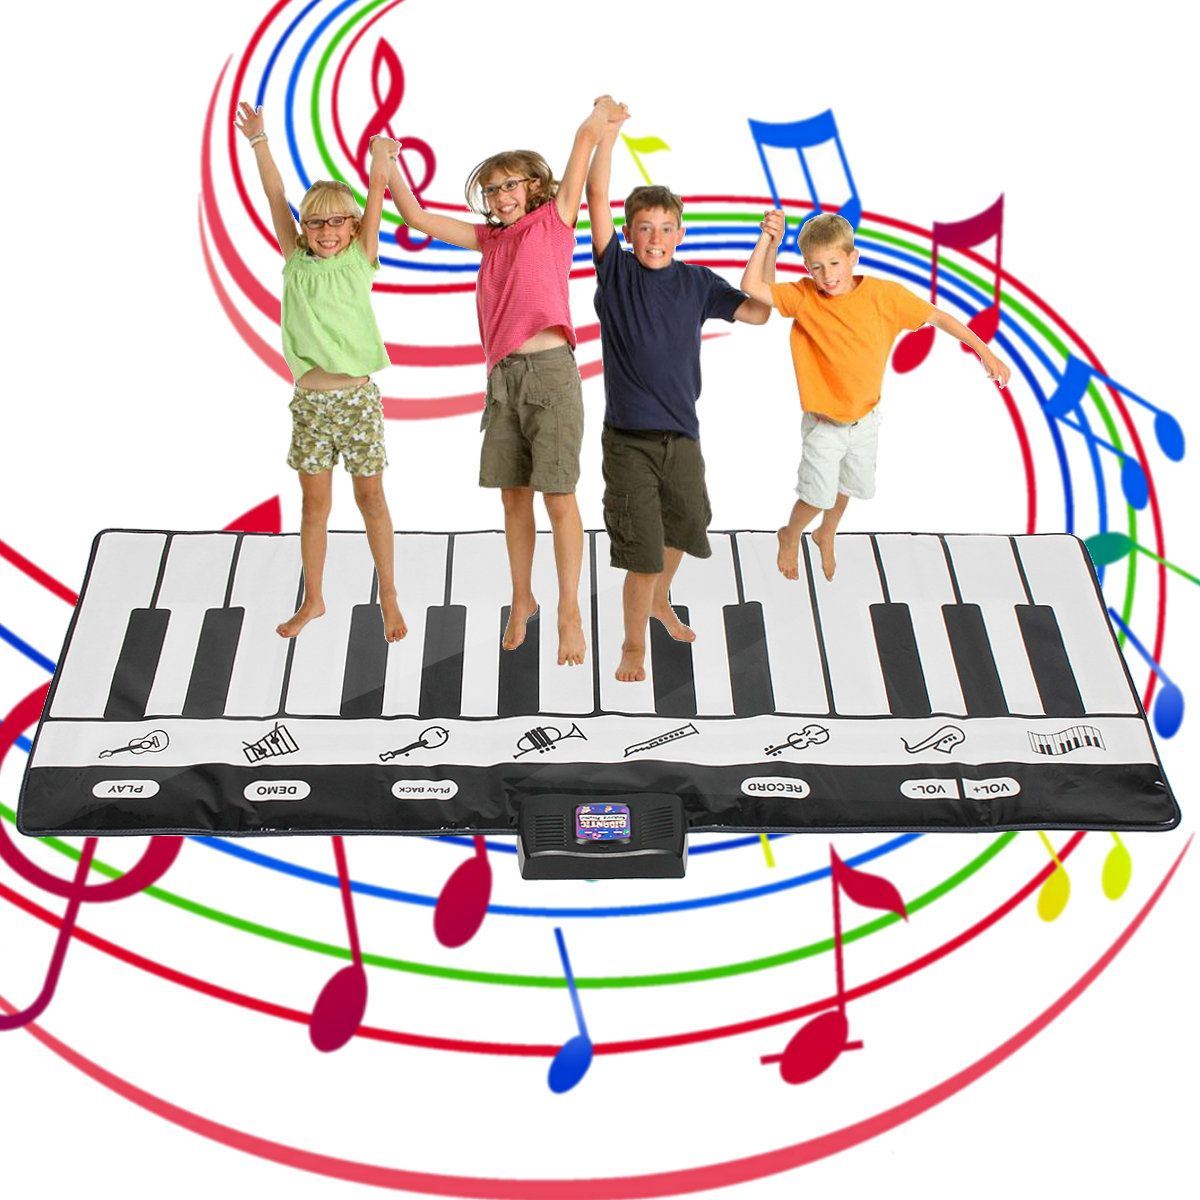 Fold Able Play Floor Piano Kid Stepping Toys Electronic Keyboard